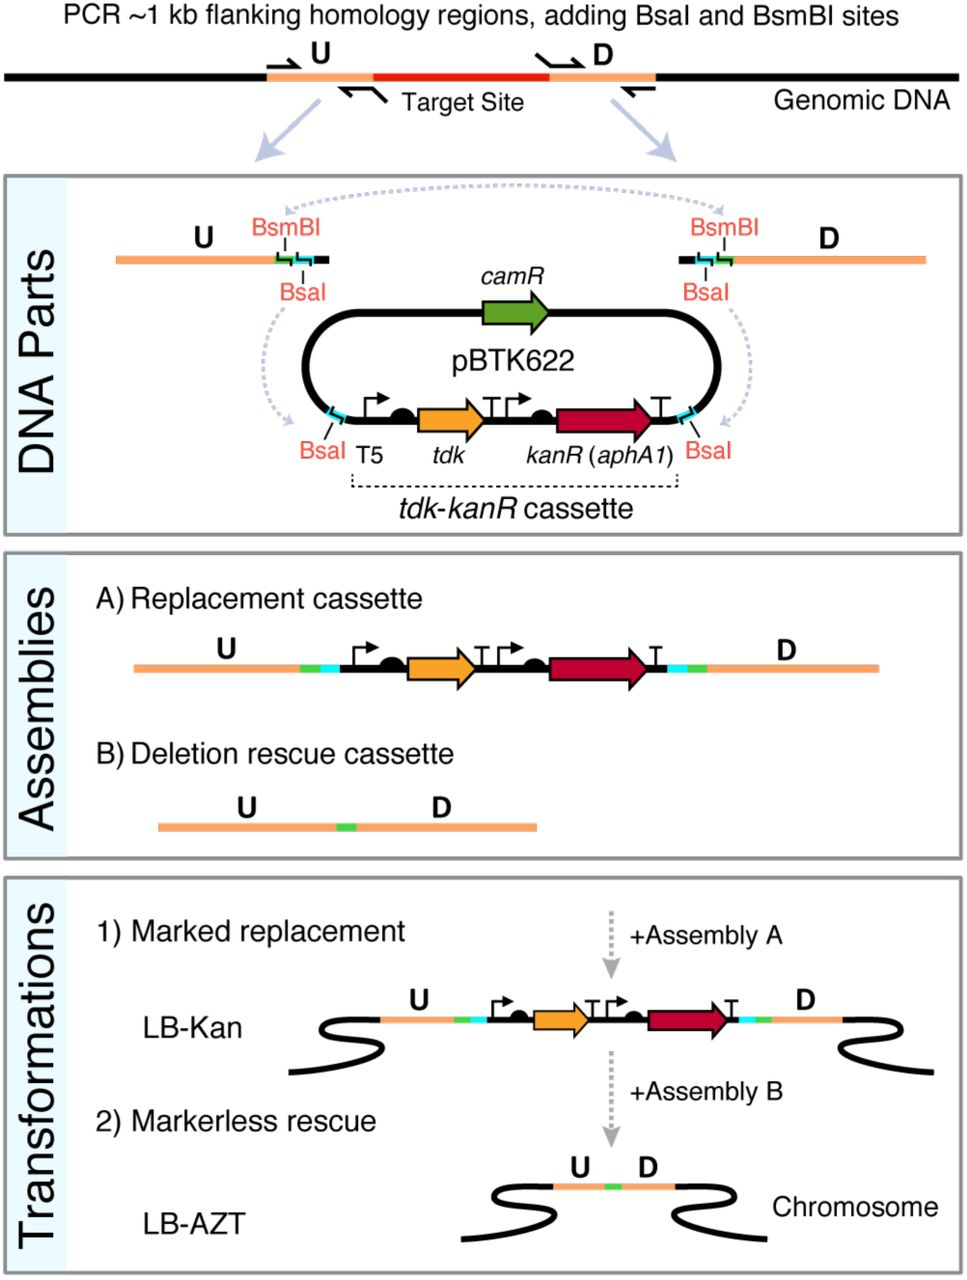 Golden Transformation method for ADP1 genome engineering. Two PCR reactions are performed to create upstream (U) and downstream (D) genomic target flanks with added terminal BsaI and BsmBI type IIS restriction sites as depicted. The two PCR products can then be combined via BsaI Golden Gate assembly (GGA) with the selection cassette to form a replacement DNA or combined with one another and optionally with additional genetic parts (not shown) via BsmBI GGA to form a rescue cassette. The positive-negative selection cassette ( tdk - kanR ) is maintained on the high-copy pBTK622 plasmid that has an origin that does not replicate in A. baylyi . The first GGA reaction is added to an A. baylyi culture and then plated on LB-Kan to select for transformants with the replacement cassette integrated into the genome. Then, transformation of the second assembly reaction with counterselection on LB-AZT is used to move the unmarked deletions/additions encoded on the rescue cassette into the genome.